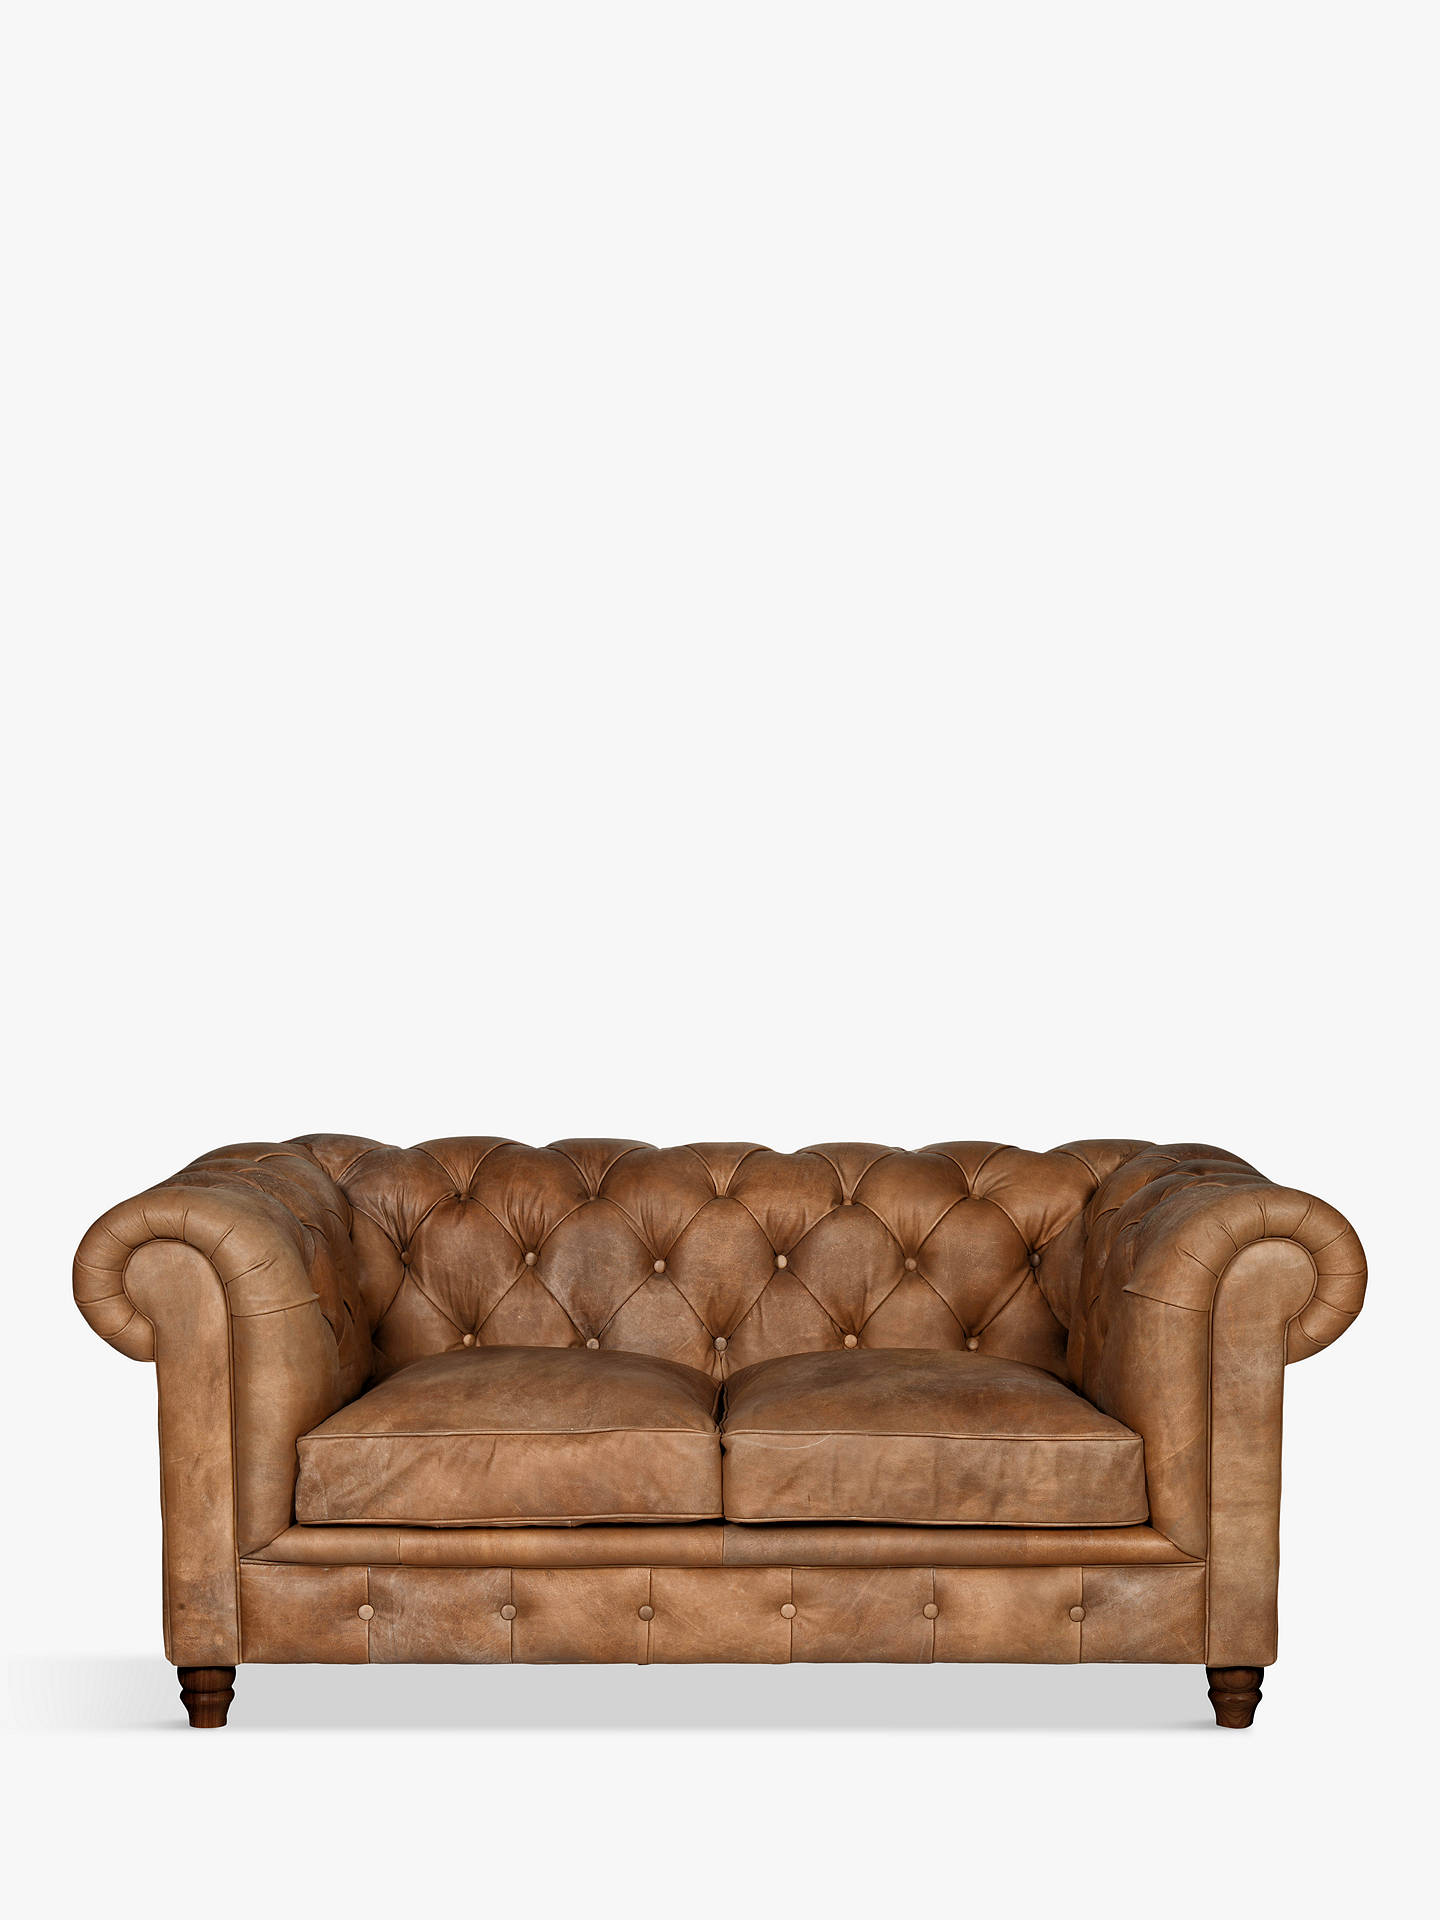 Halo Earle Chesterfield Medium 2 Seater Leather Sofa Riders Nut Online At Johnlewis